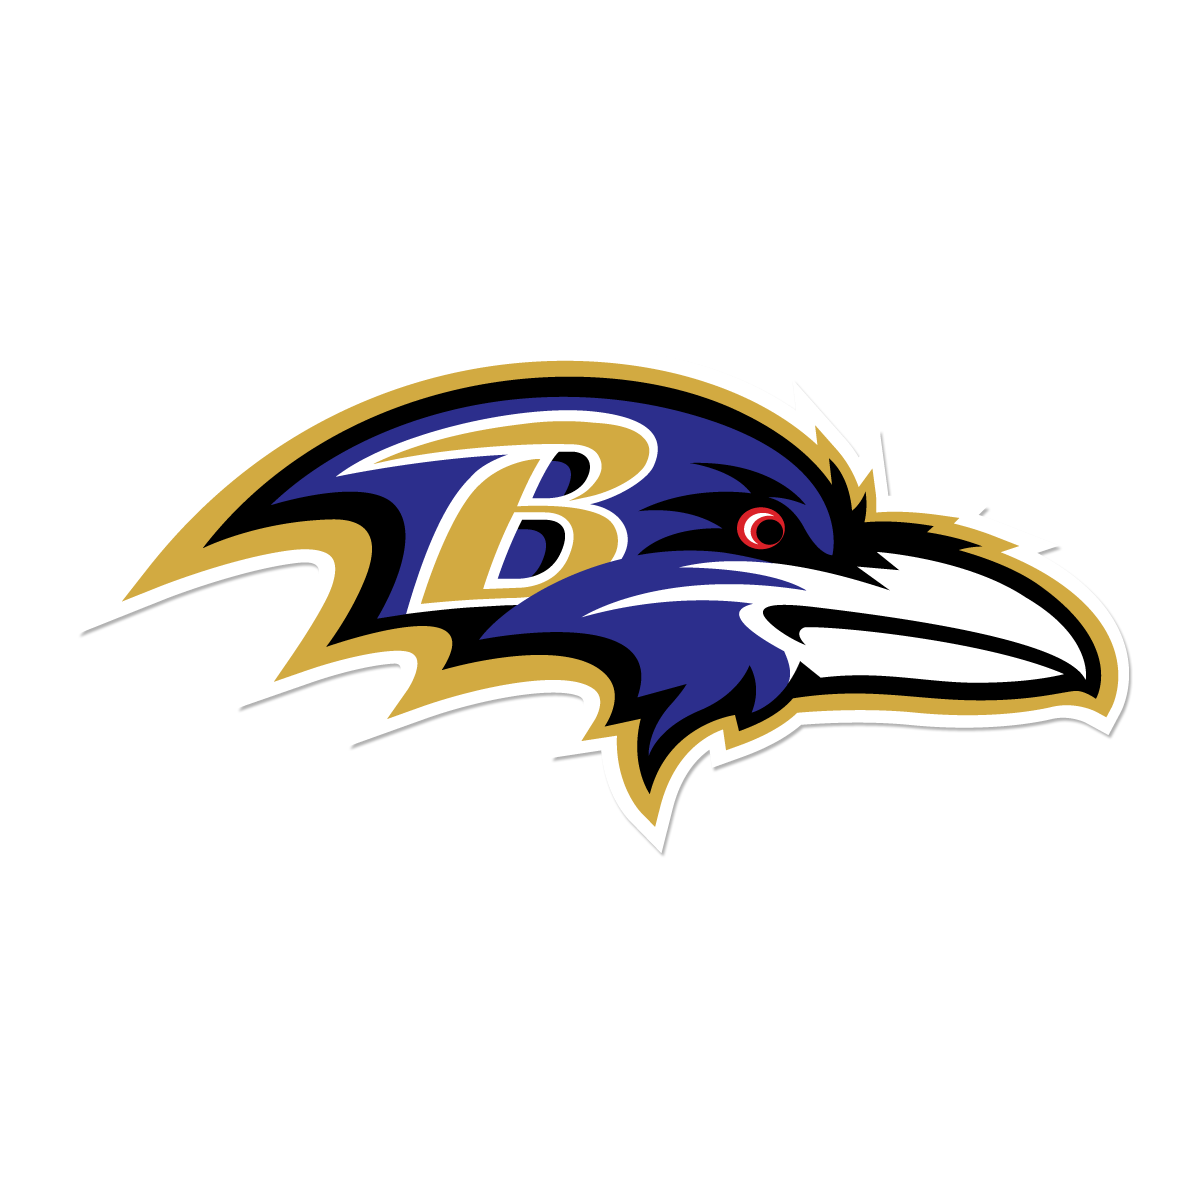 Raven Youth Football Grant Application Available